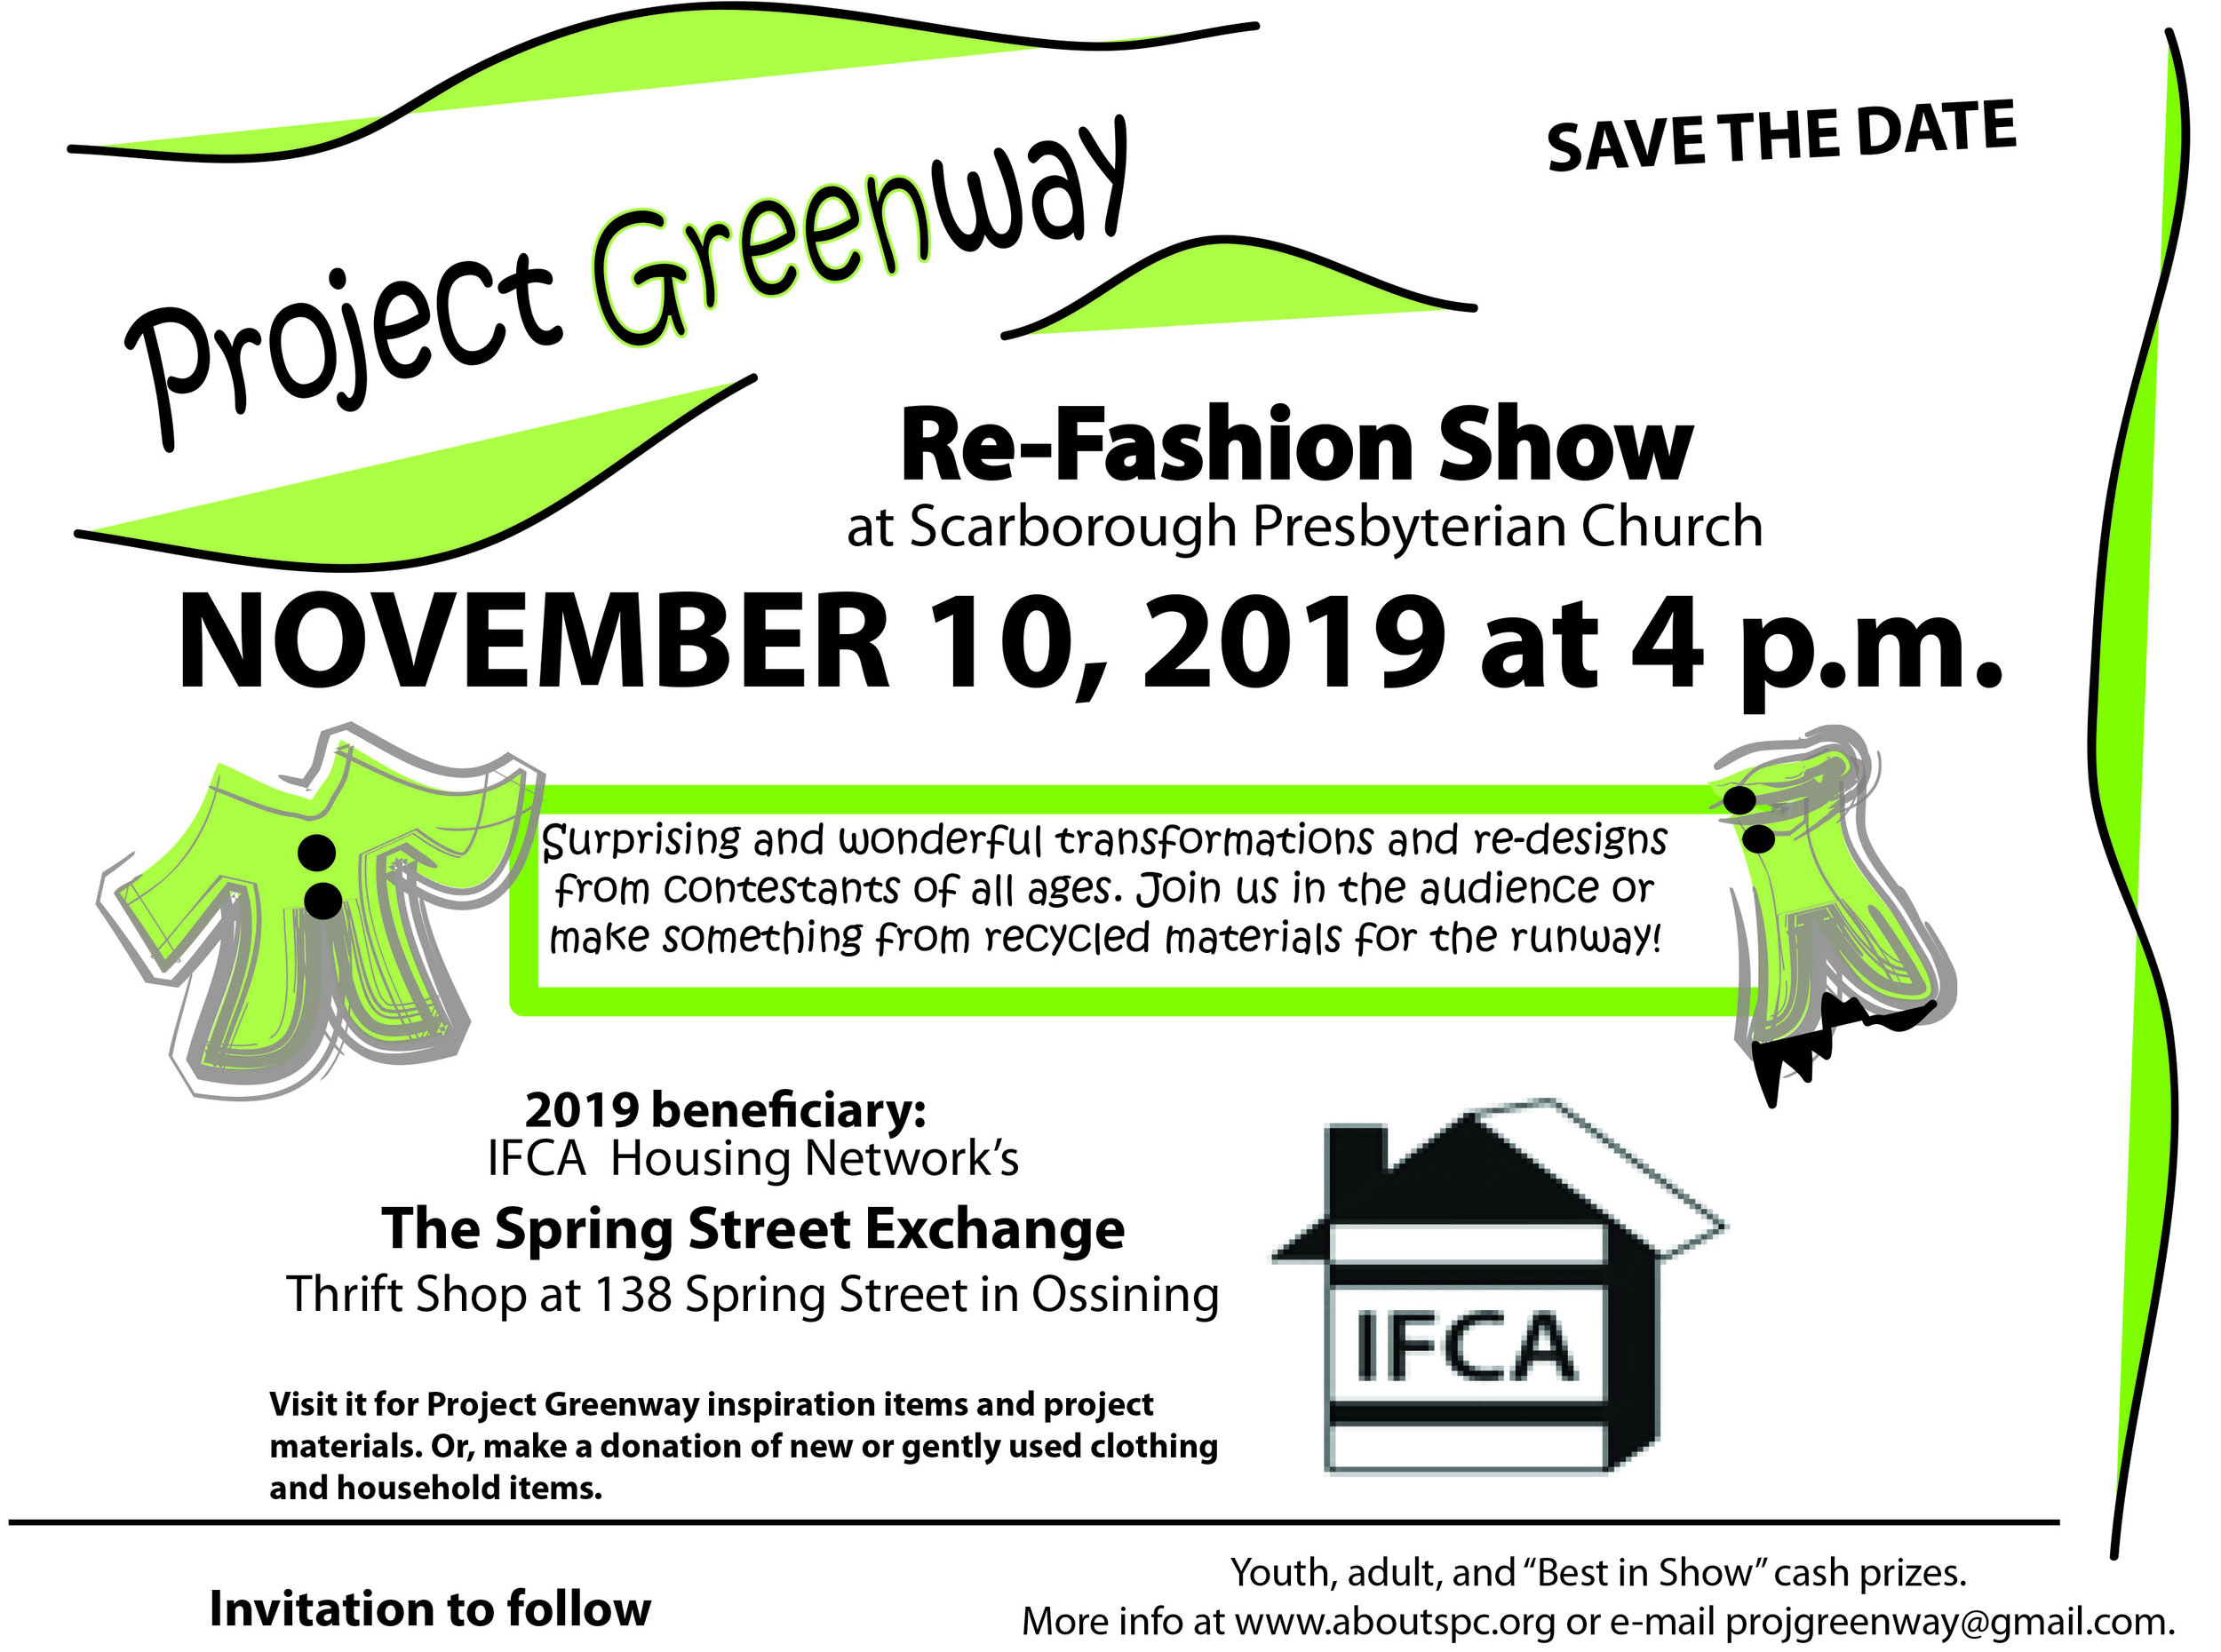 project greenway 2019 Save the Date rev.jpg